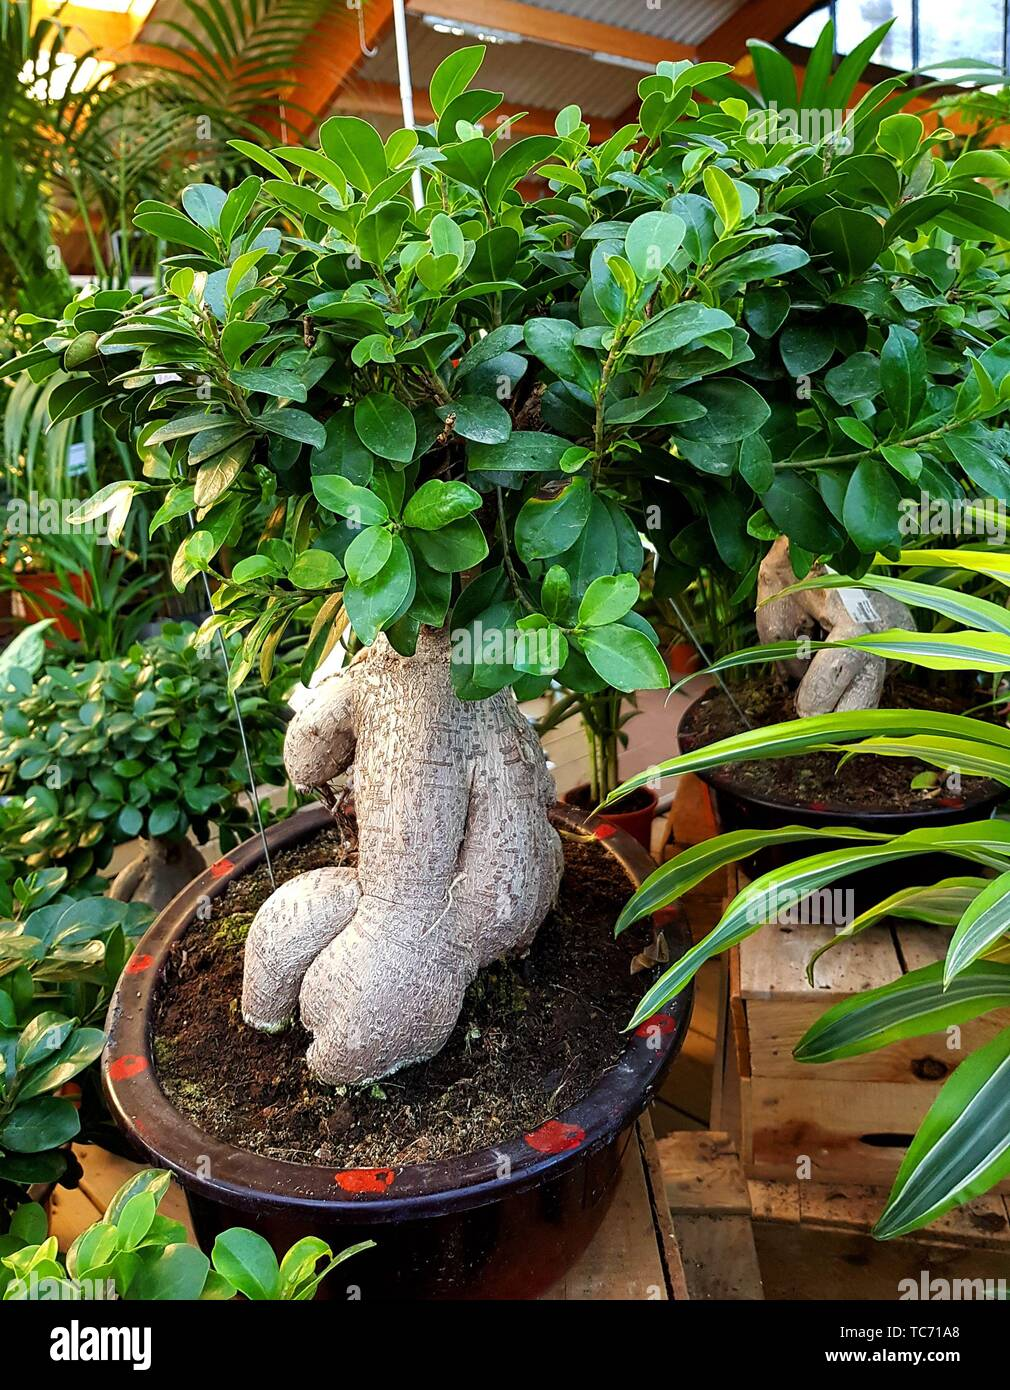 Ficus Ginseng Bonsai Tree Ficus Retusa In A Garden Center Ginseng Ficus Bonsai Trees Are Very Hardy And Easy To Take Care Of Many Beginning Stock Photo Alamy